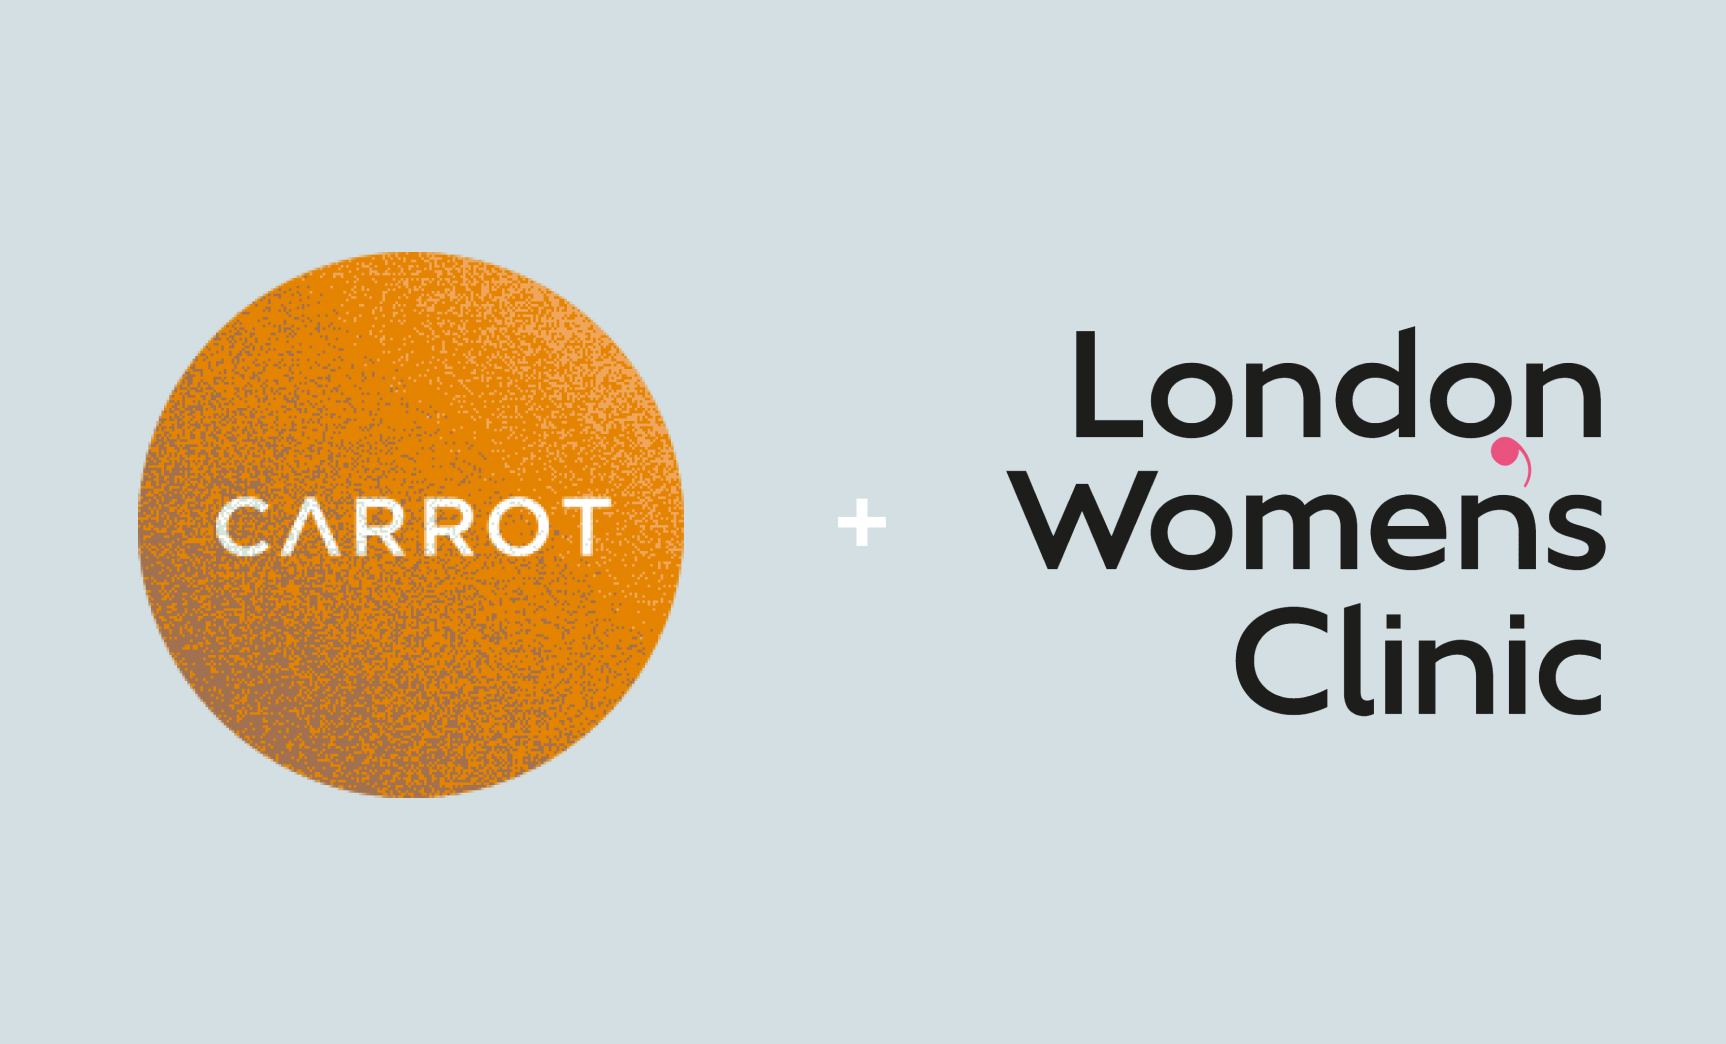 London Women's Clinic joins Carrot as UK partner